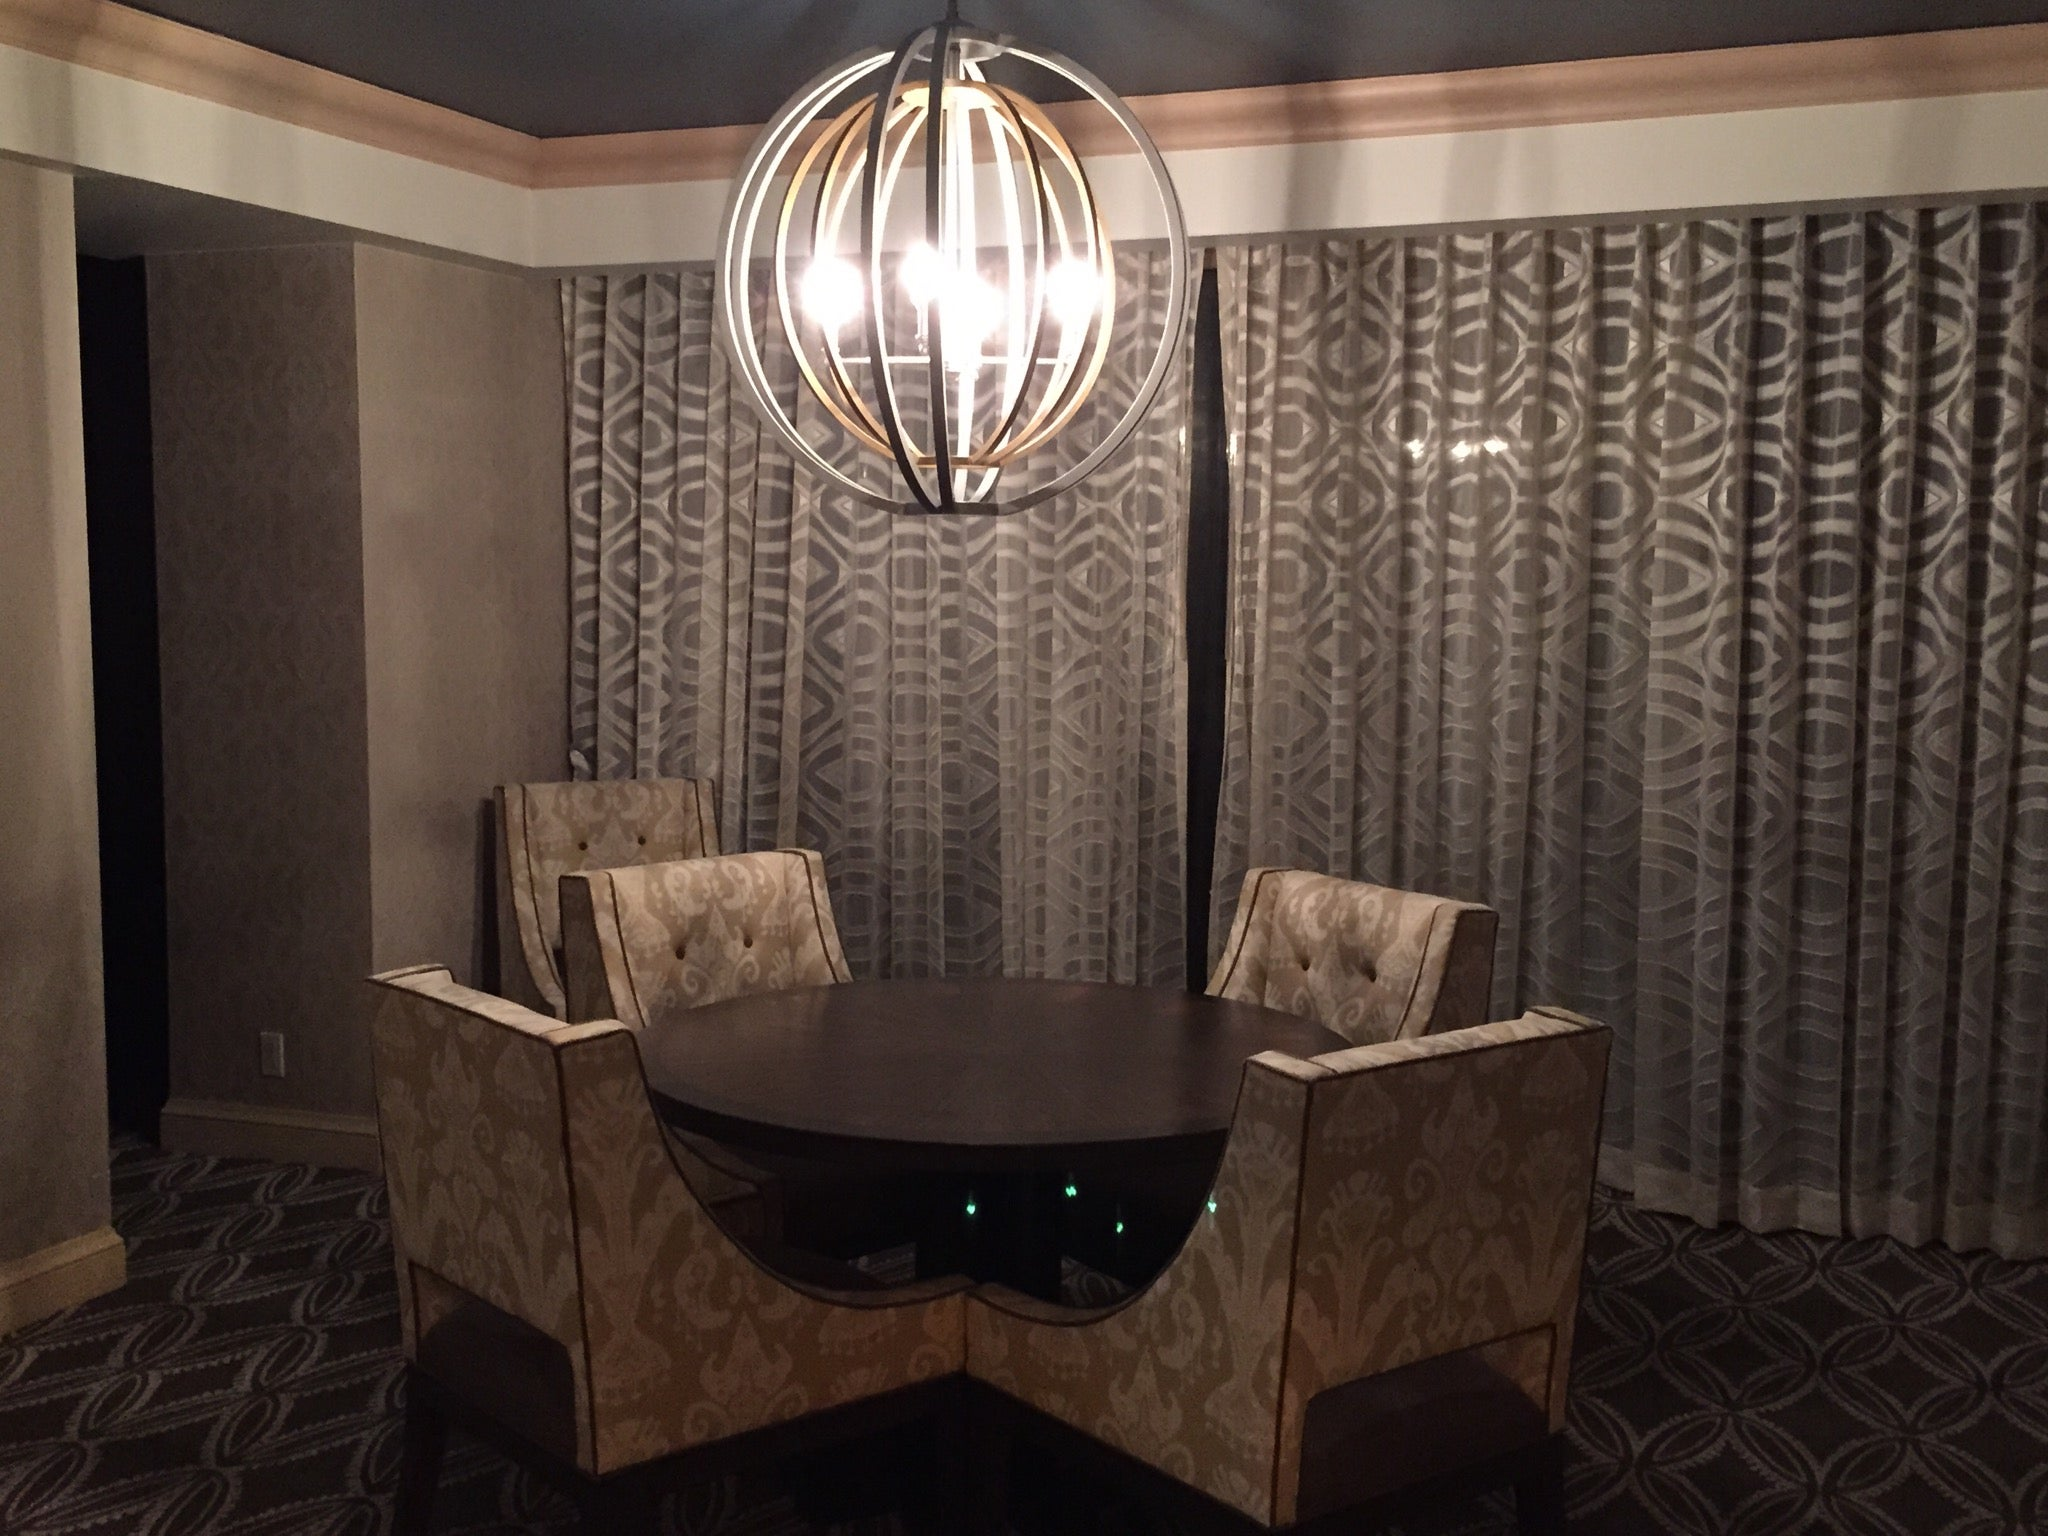 The Phoenician Executive Suite Dining Table